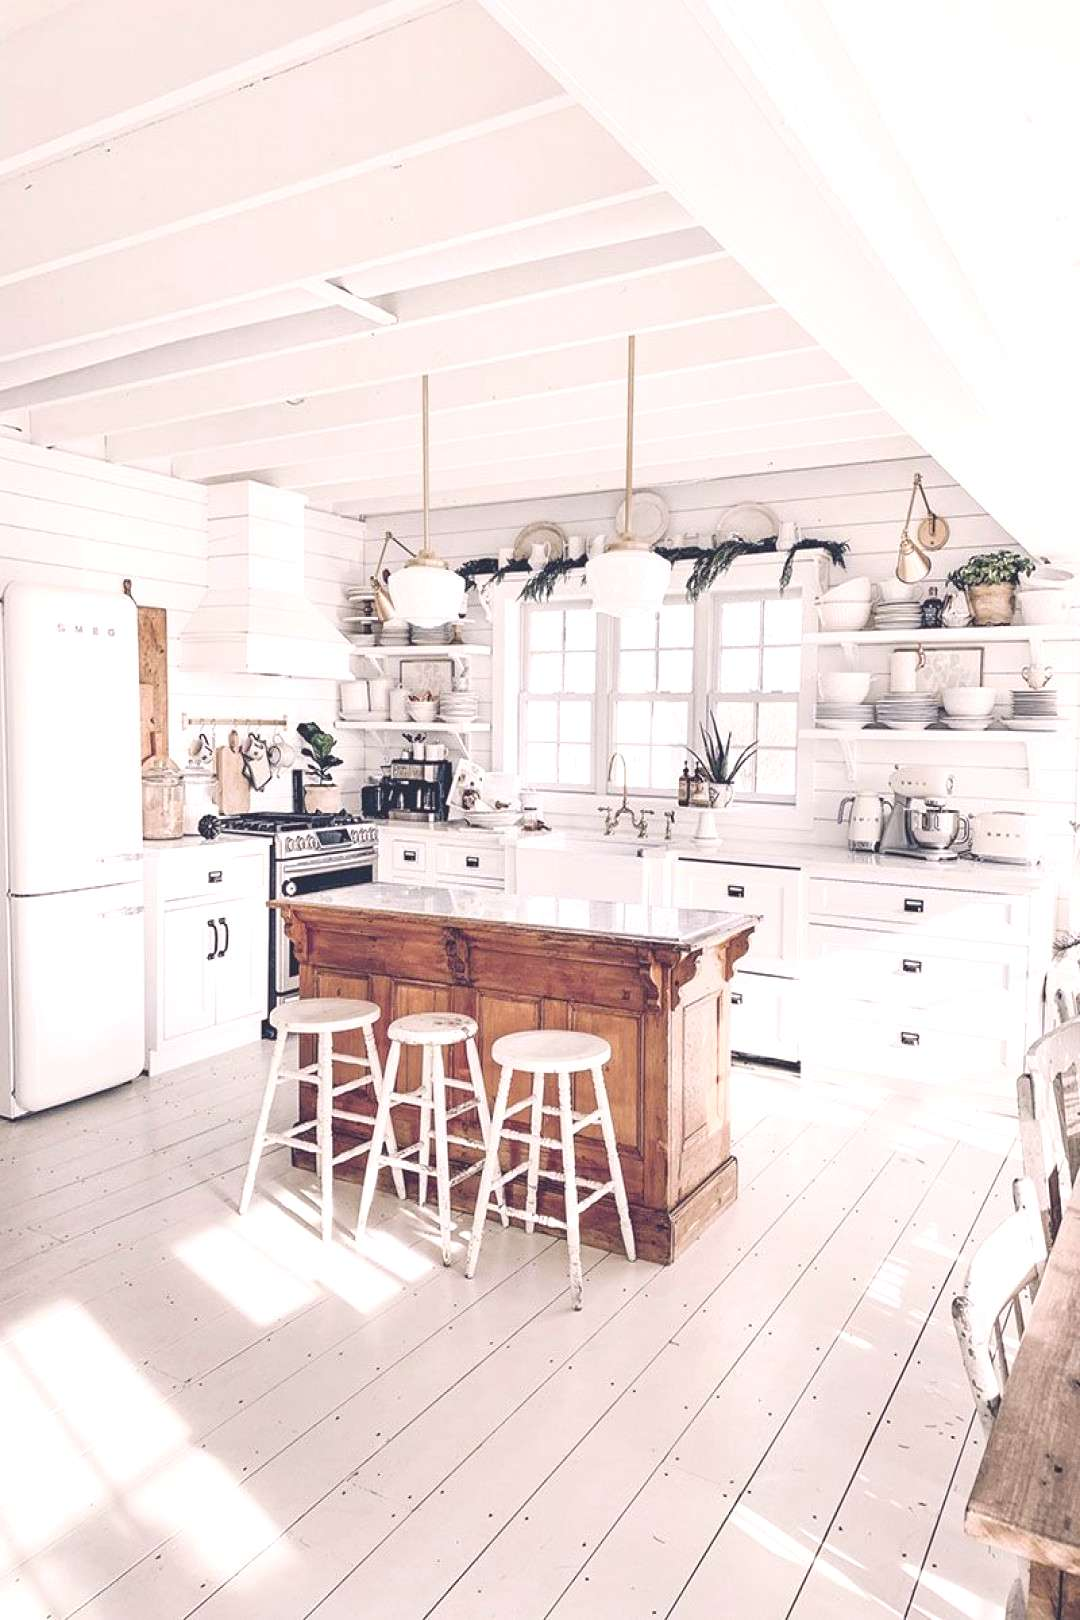 Fun Ideas To Accesorize Your Kitchen With Farmhouse Style. Quick... easy and budget friendly ideas